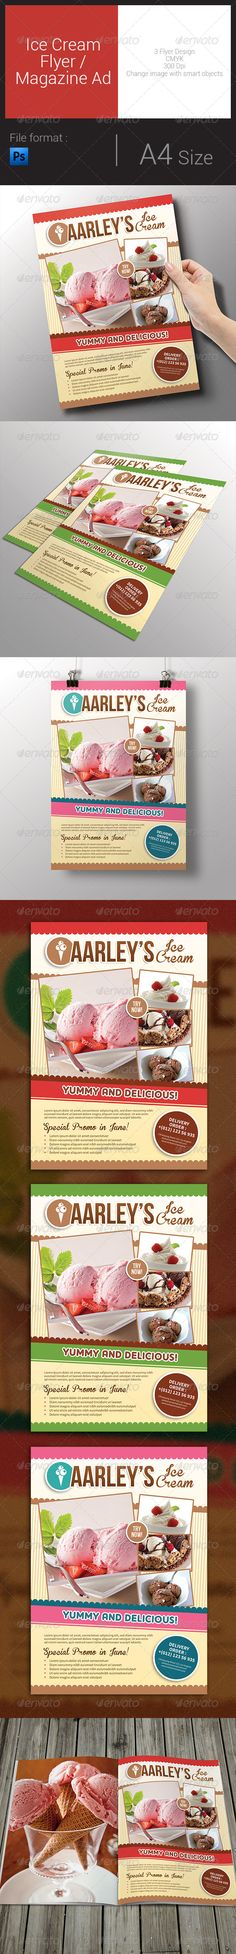 Ice Cream Flyer Template PSD | Buy and Download: http://graphicriver.net/item/ice-cream-flyer-magazine-ad/8016828?WT.ac=category_thumb&WT.z_author=arifpoernomo&ref=ksioks